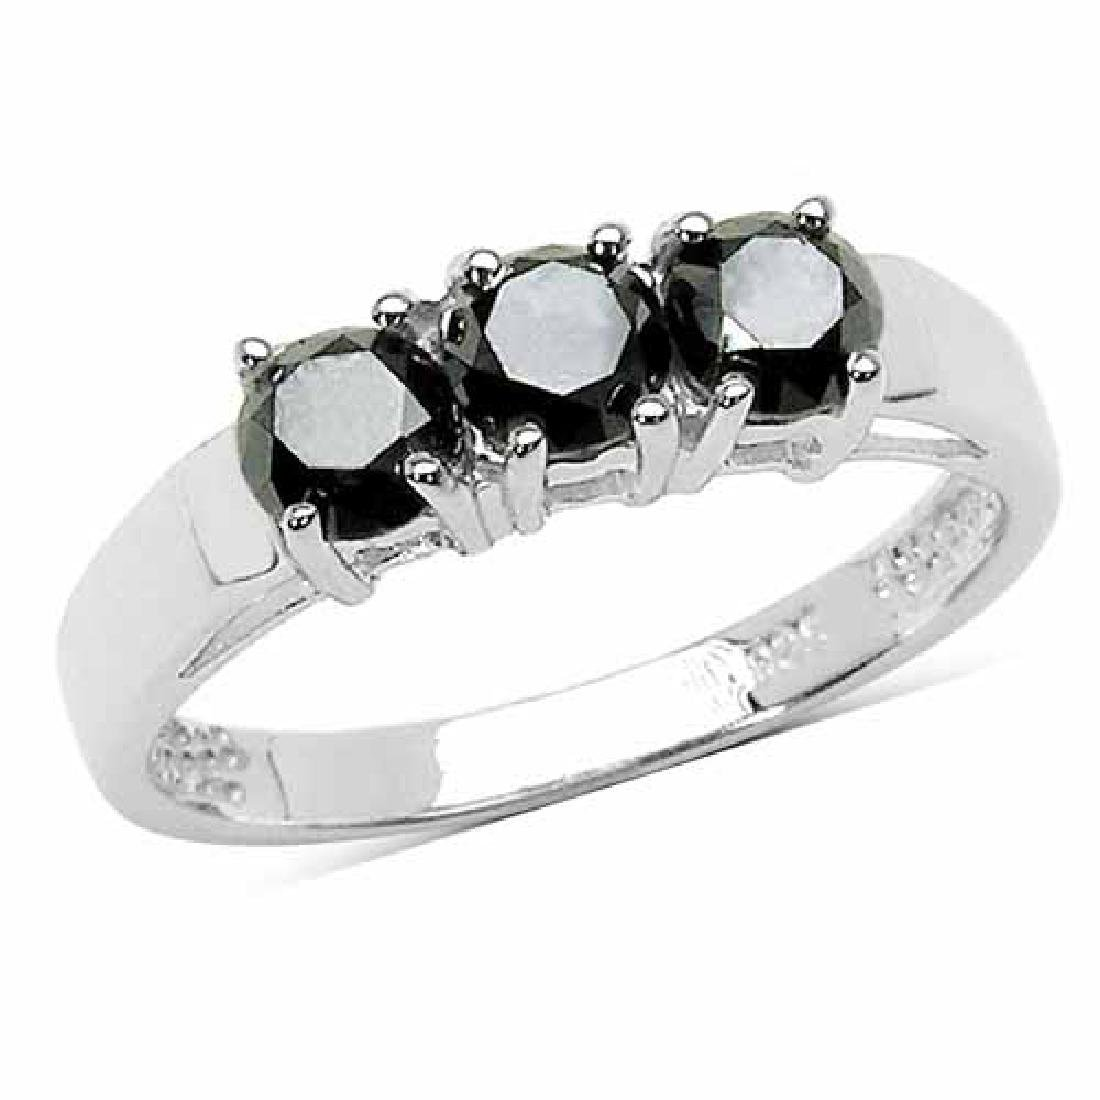 1.19 Carat Genuine Black Diamond .925 Sterling Silver R